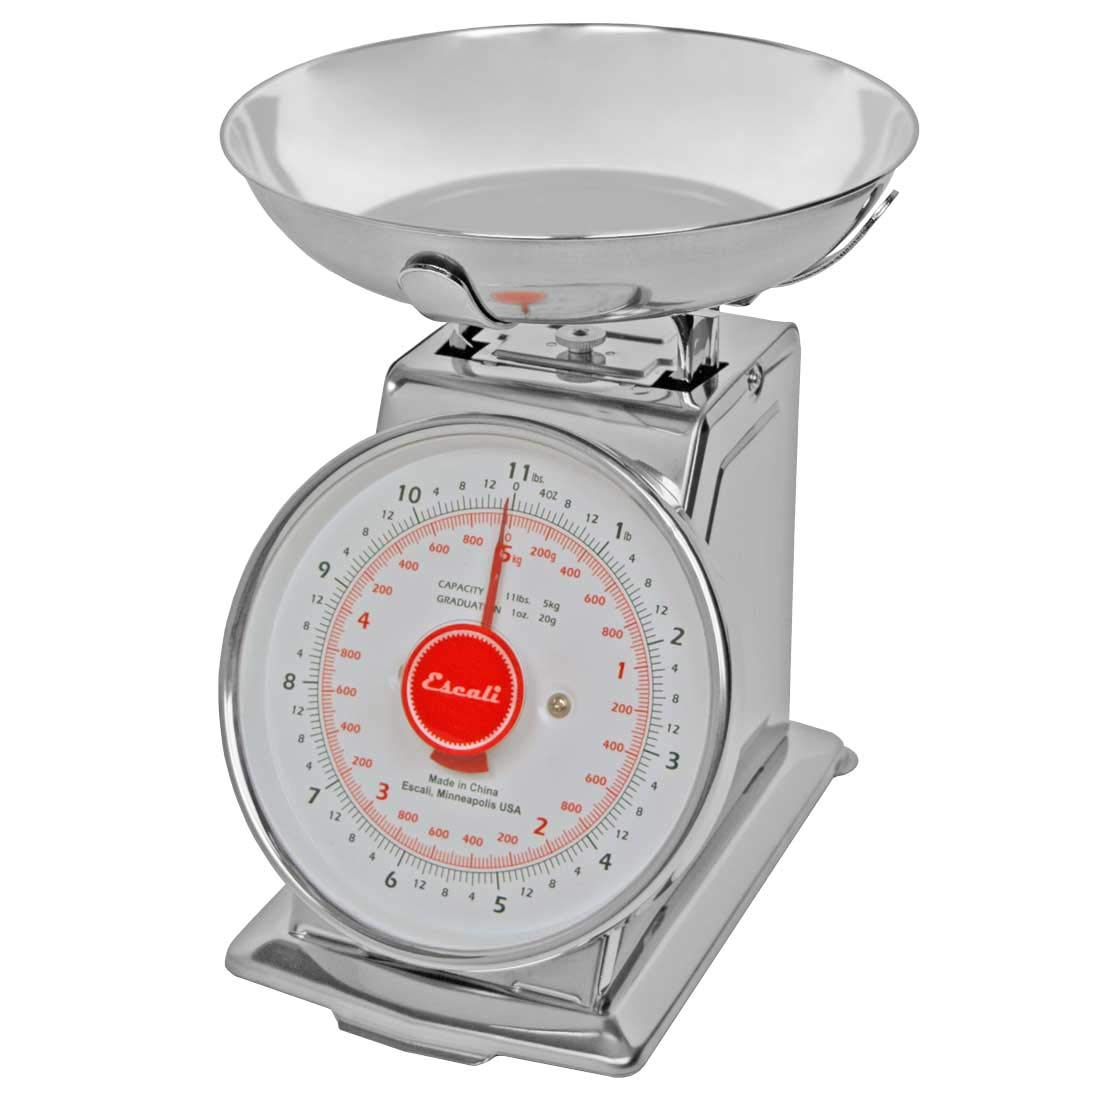 Escali DS115B Mercado Retro Classic Mechanical Dial Stainless Steel Scale, Removeable Bowl, Tare Functionality, 11lb Capacity, Stainless